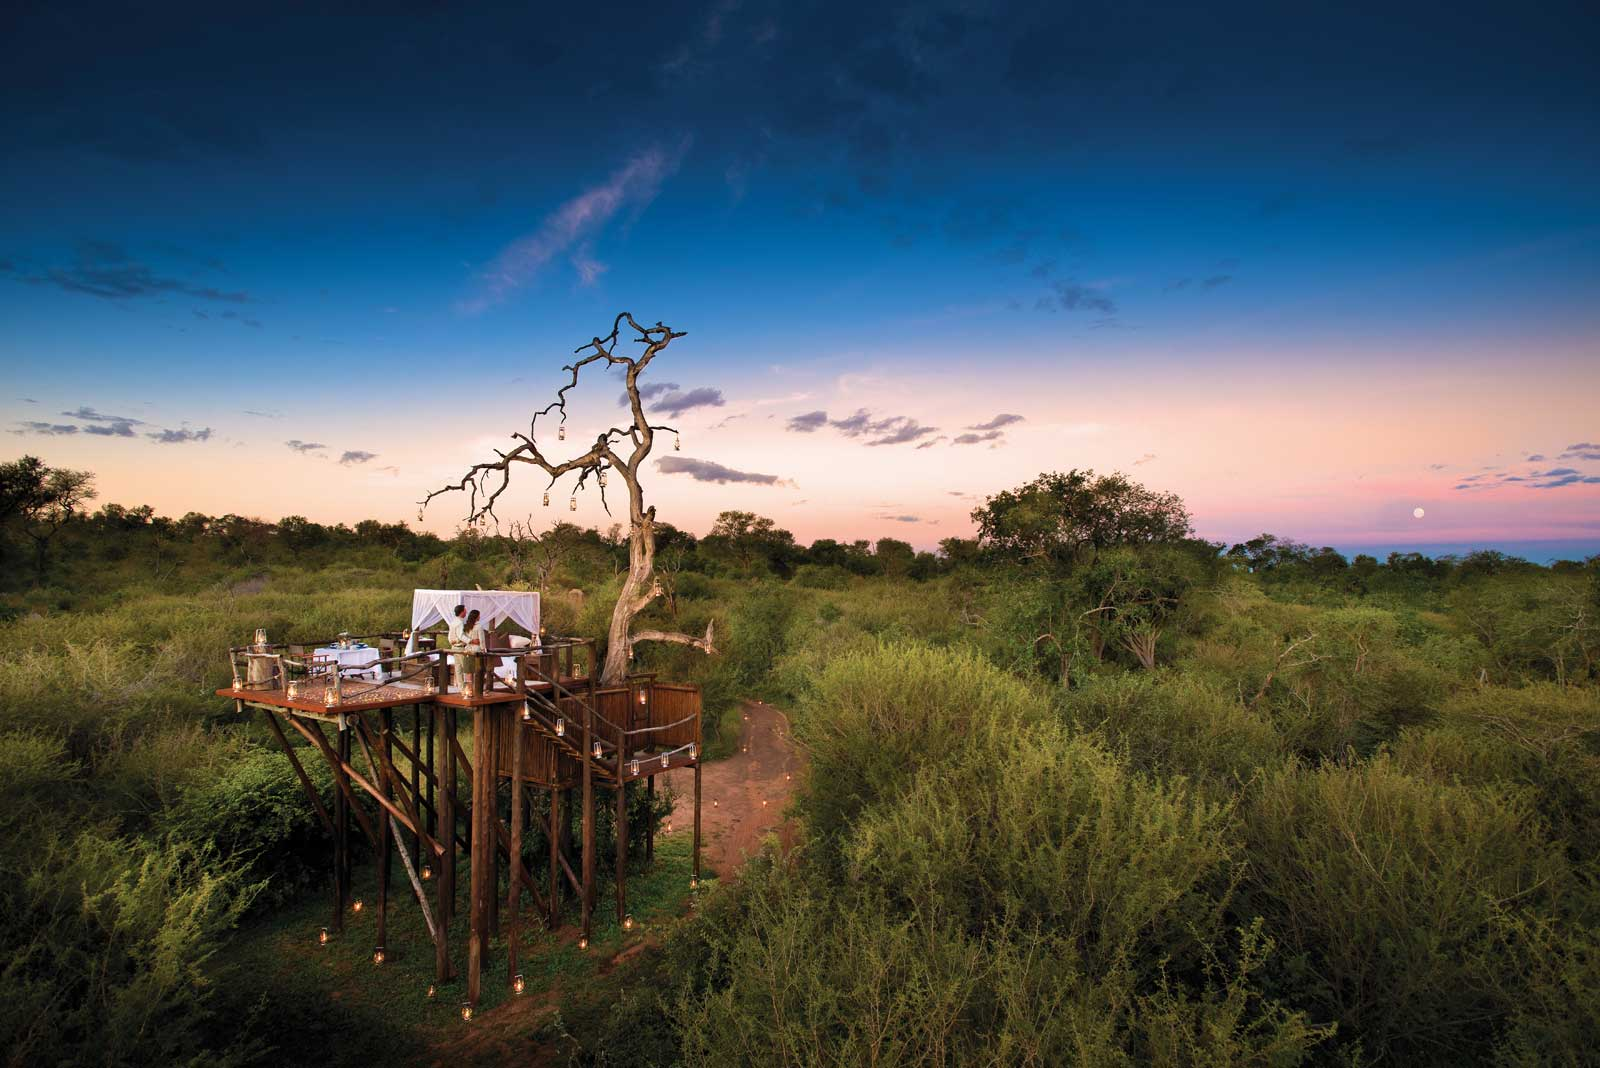 Chalkley Treehouse starved experience, Lion Sands